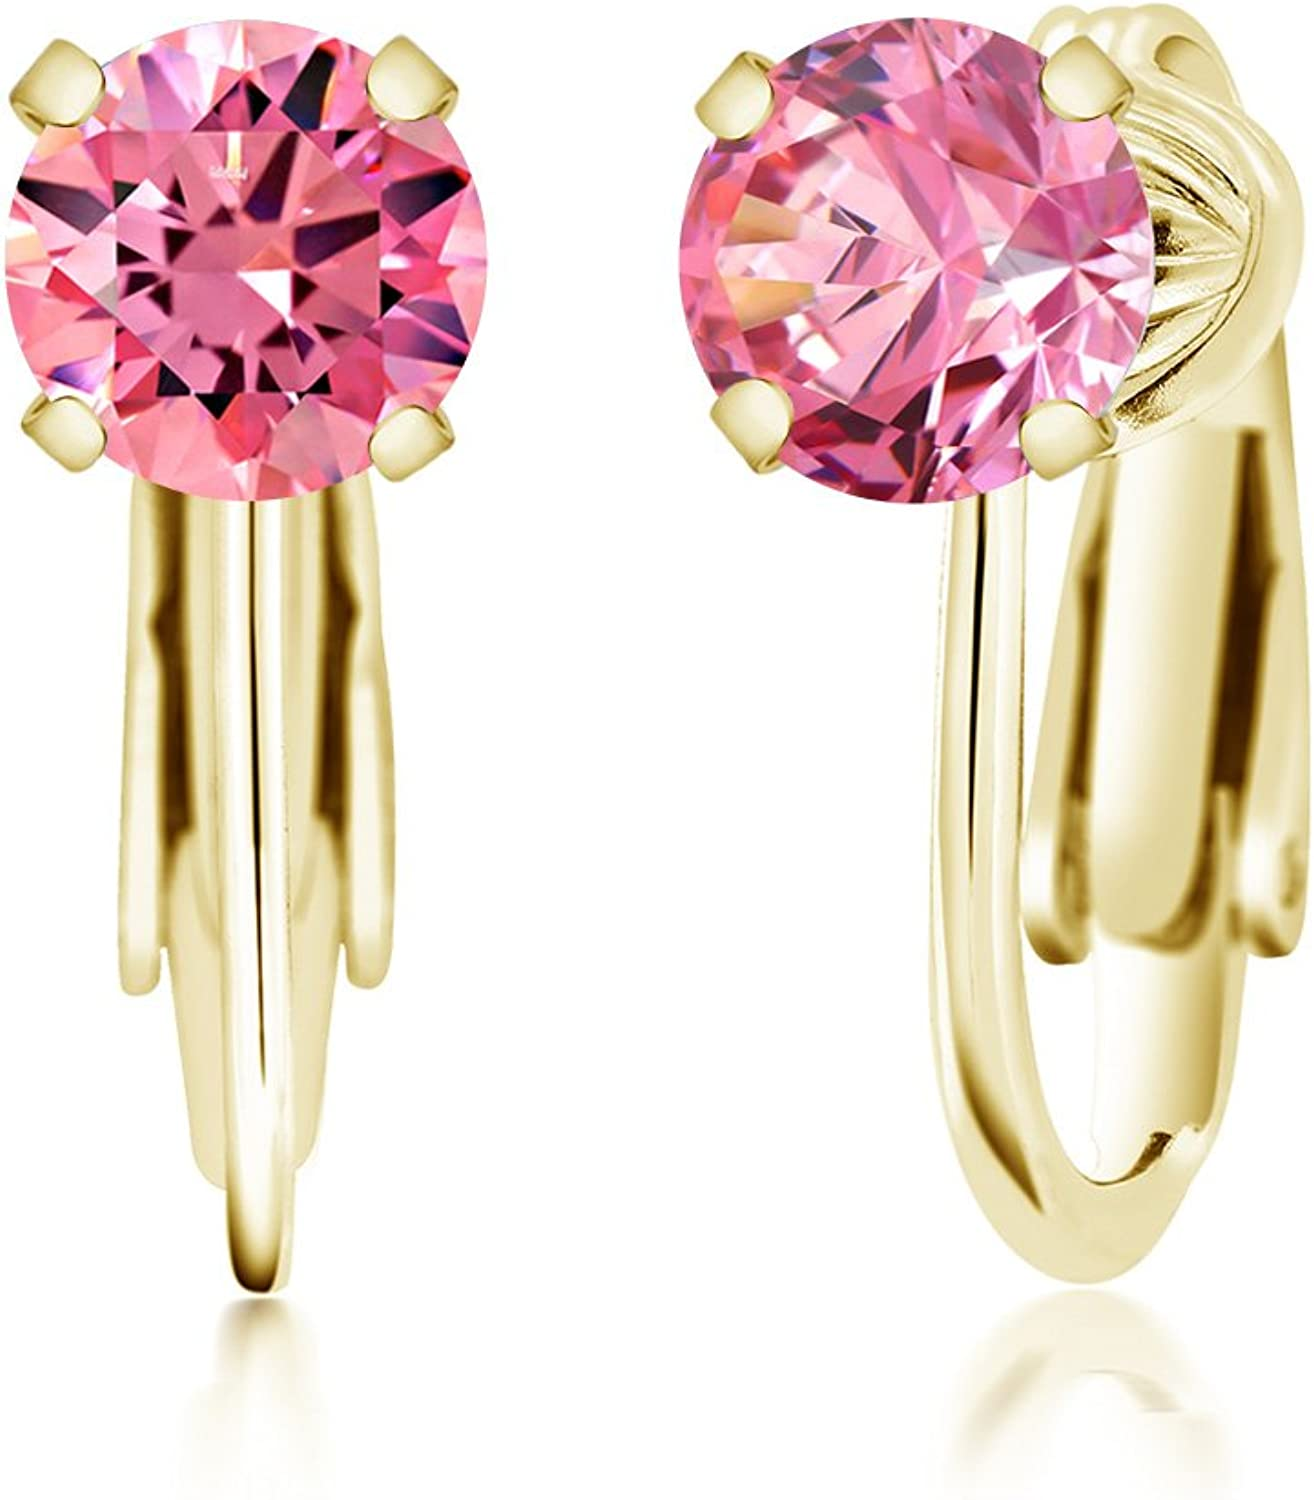 Carlo white Fancy Pink 925 Yellow gold Plated Silver Earrings Made With Swarovski Zirconia